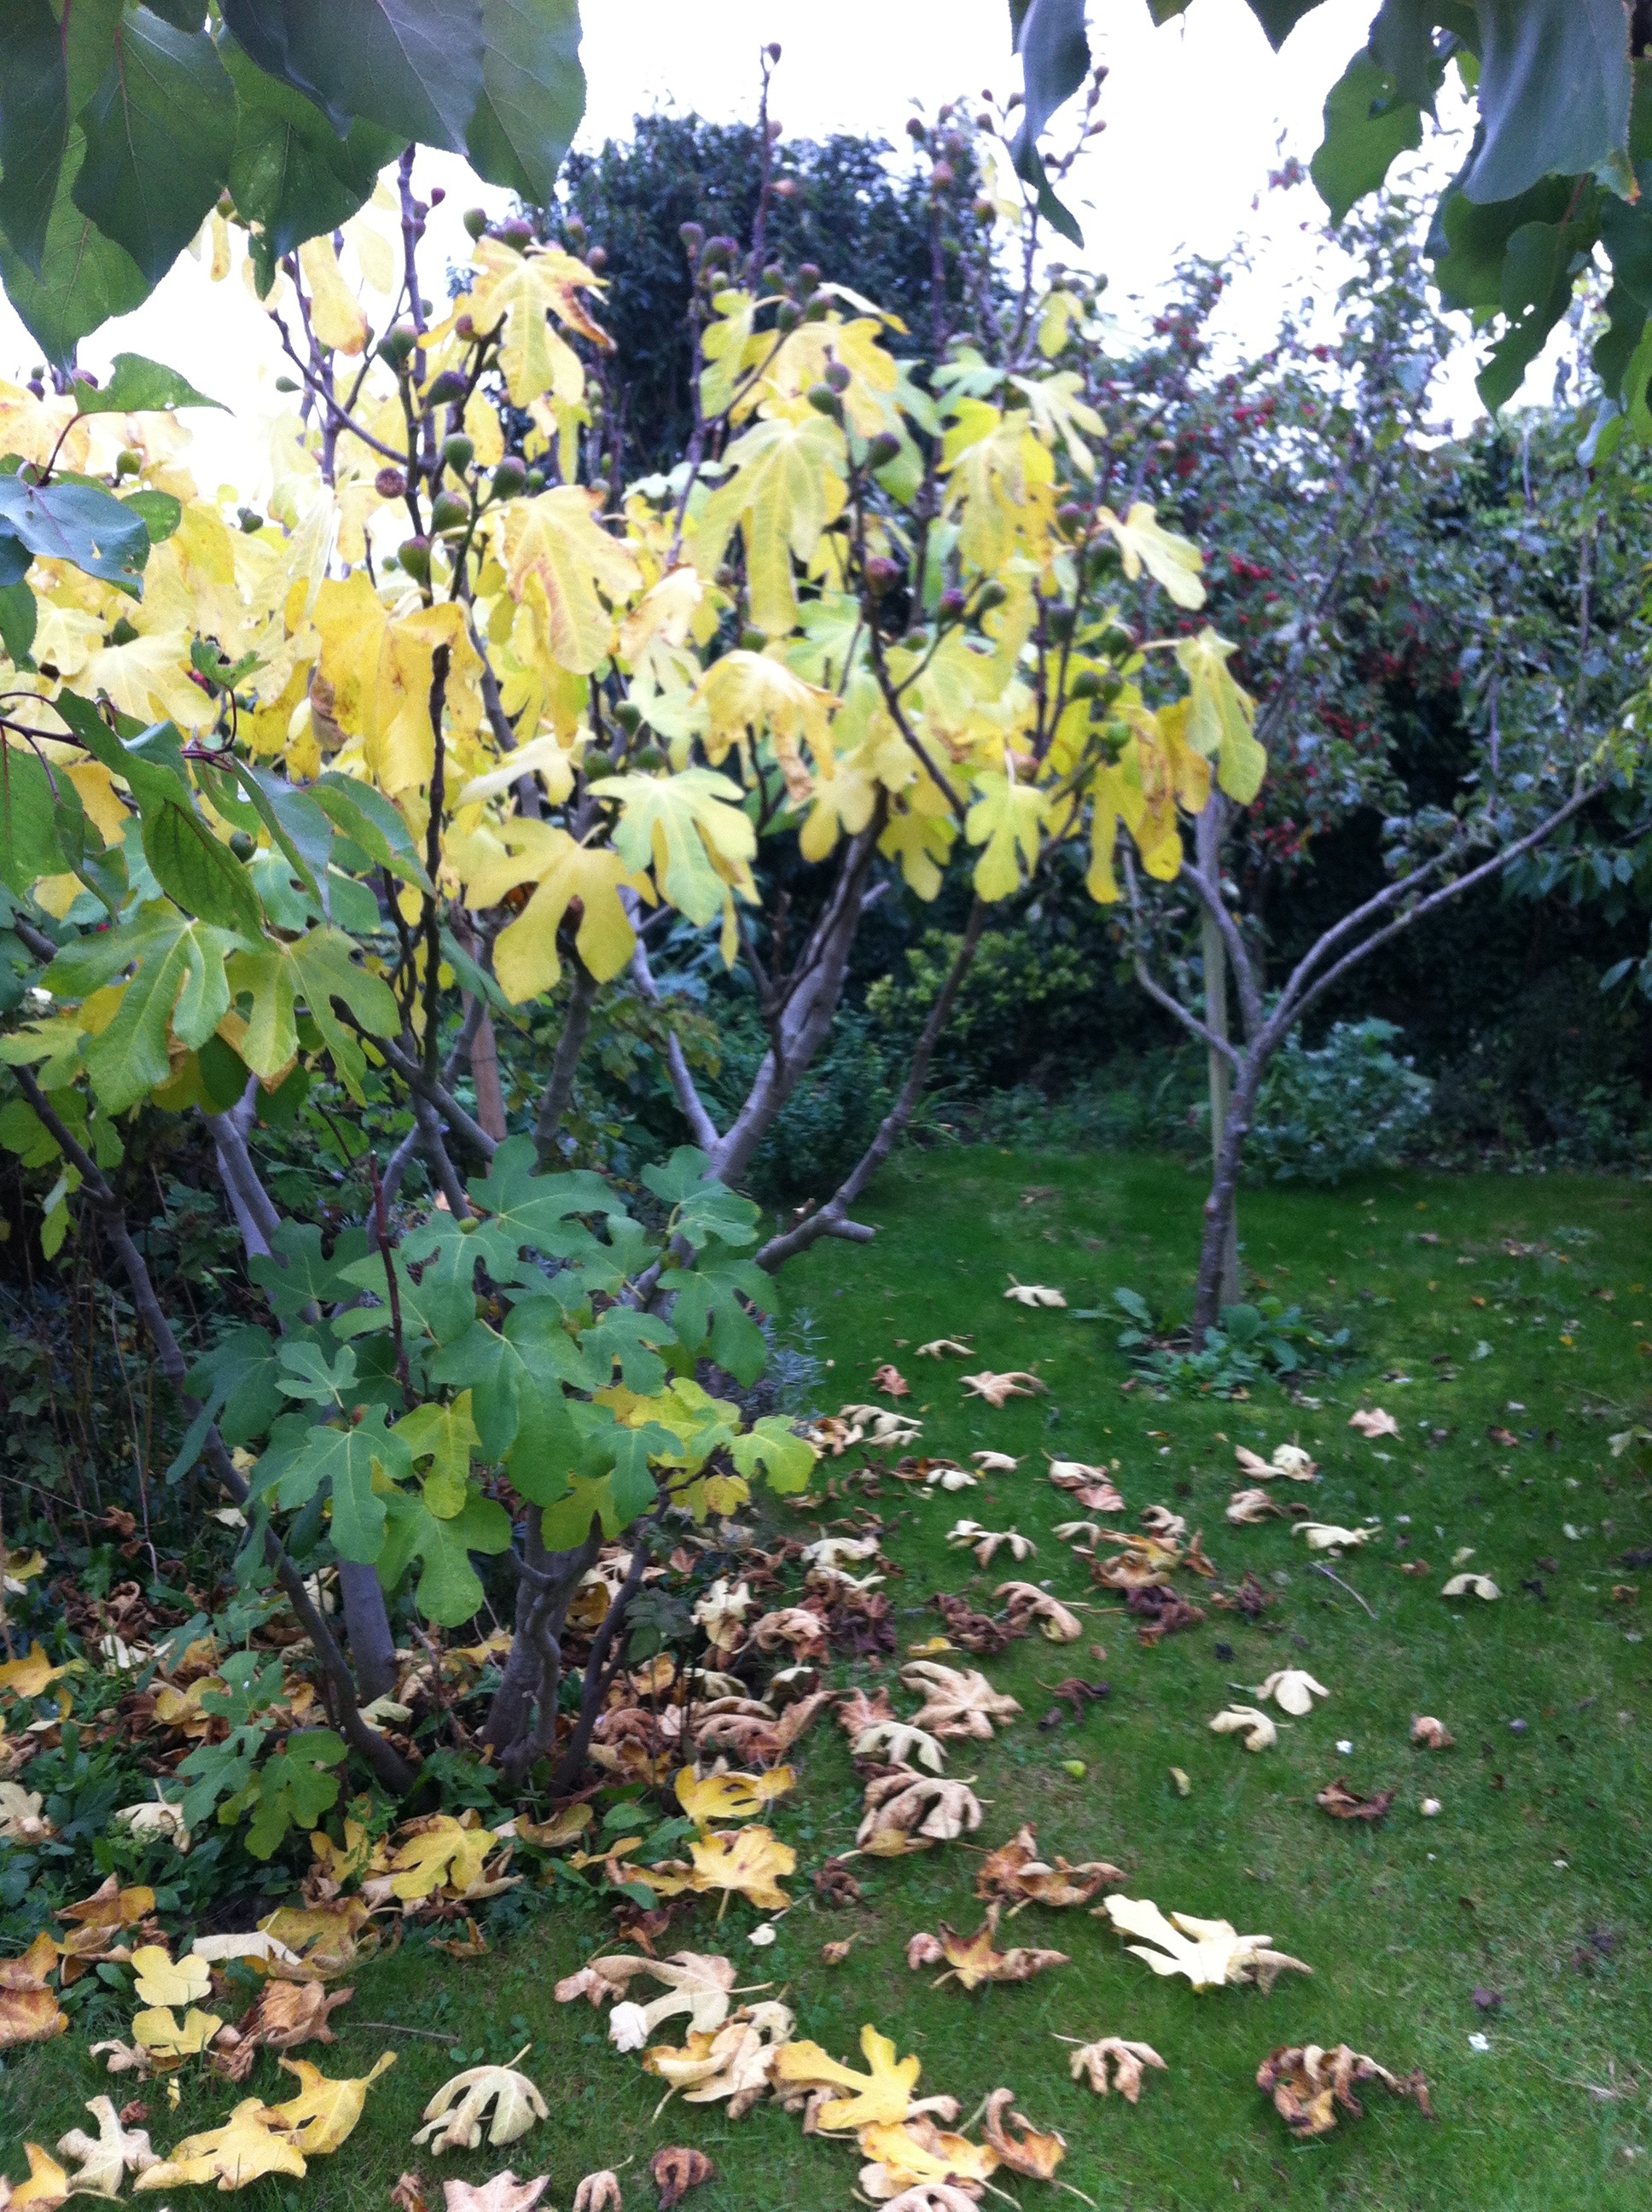 Poem in Autumn: NeverLand of Now